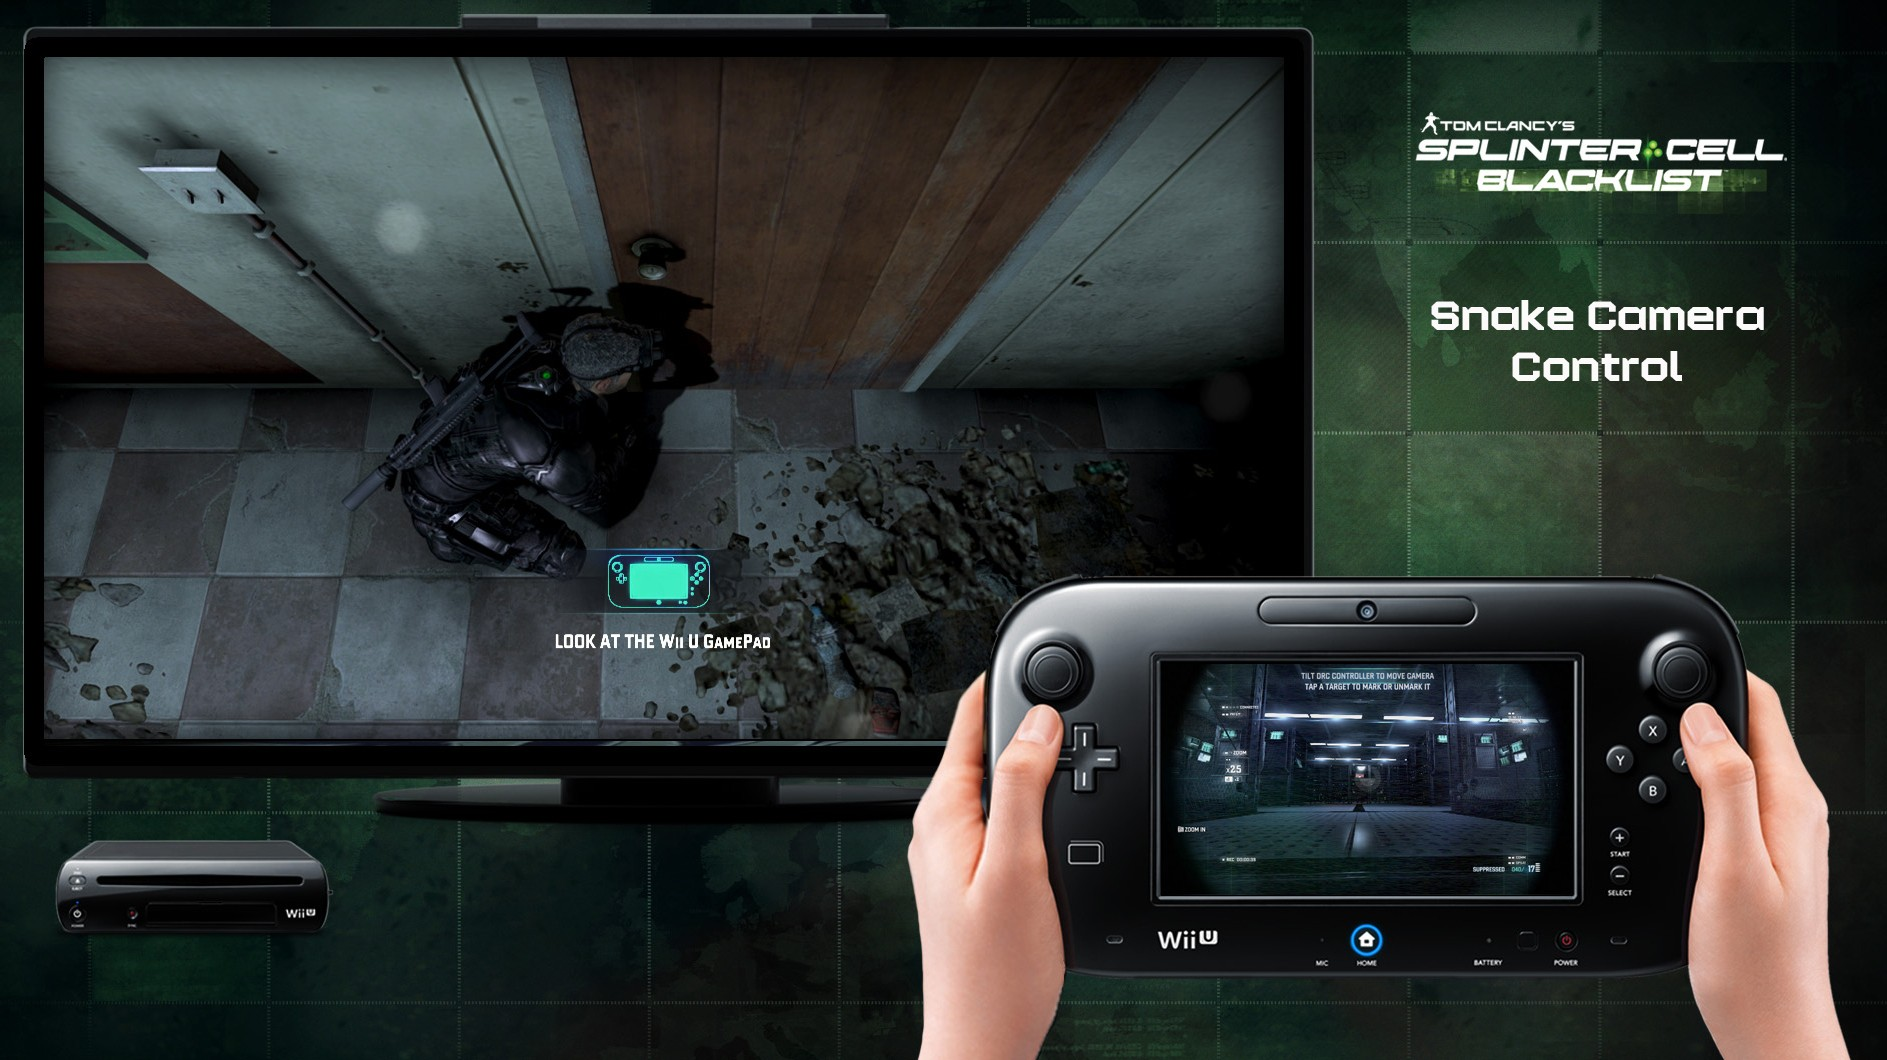 splinter cell blacklist is coming to the wii u | forums